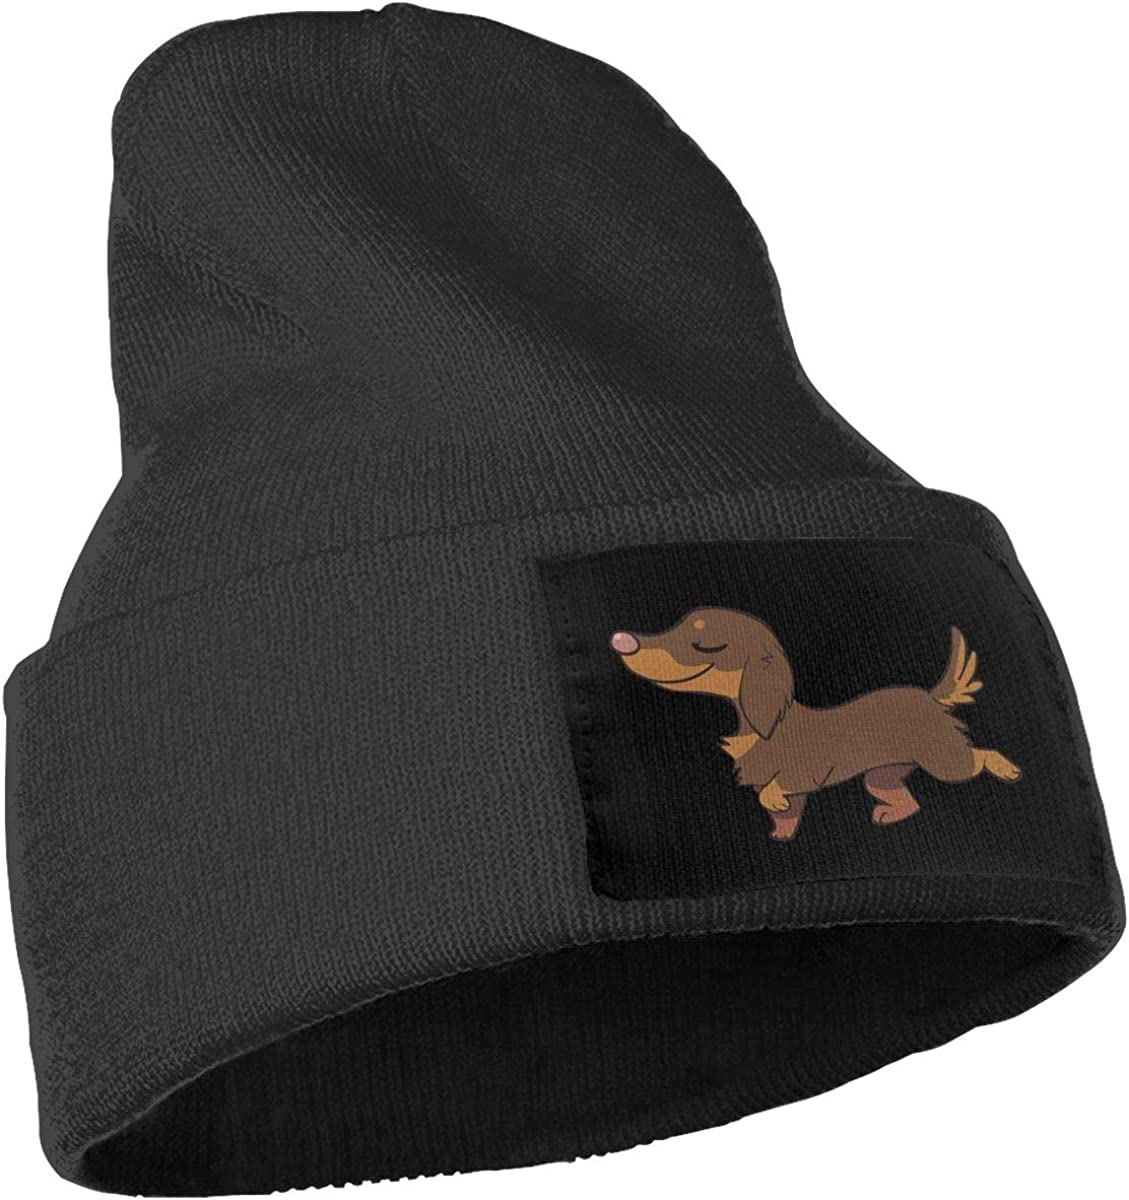 COLLJL-8 Men /& Women Dachshund Funny Outdoor Stretch Knit Beanies Hat Soft Winter Knit Caps